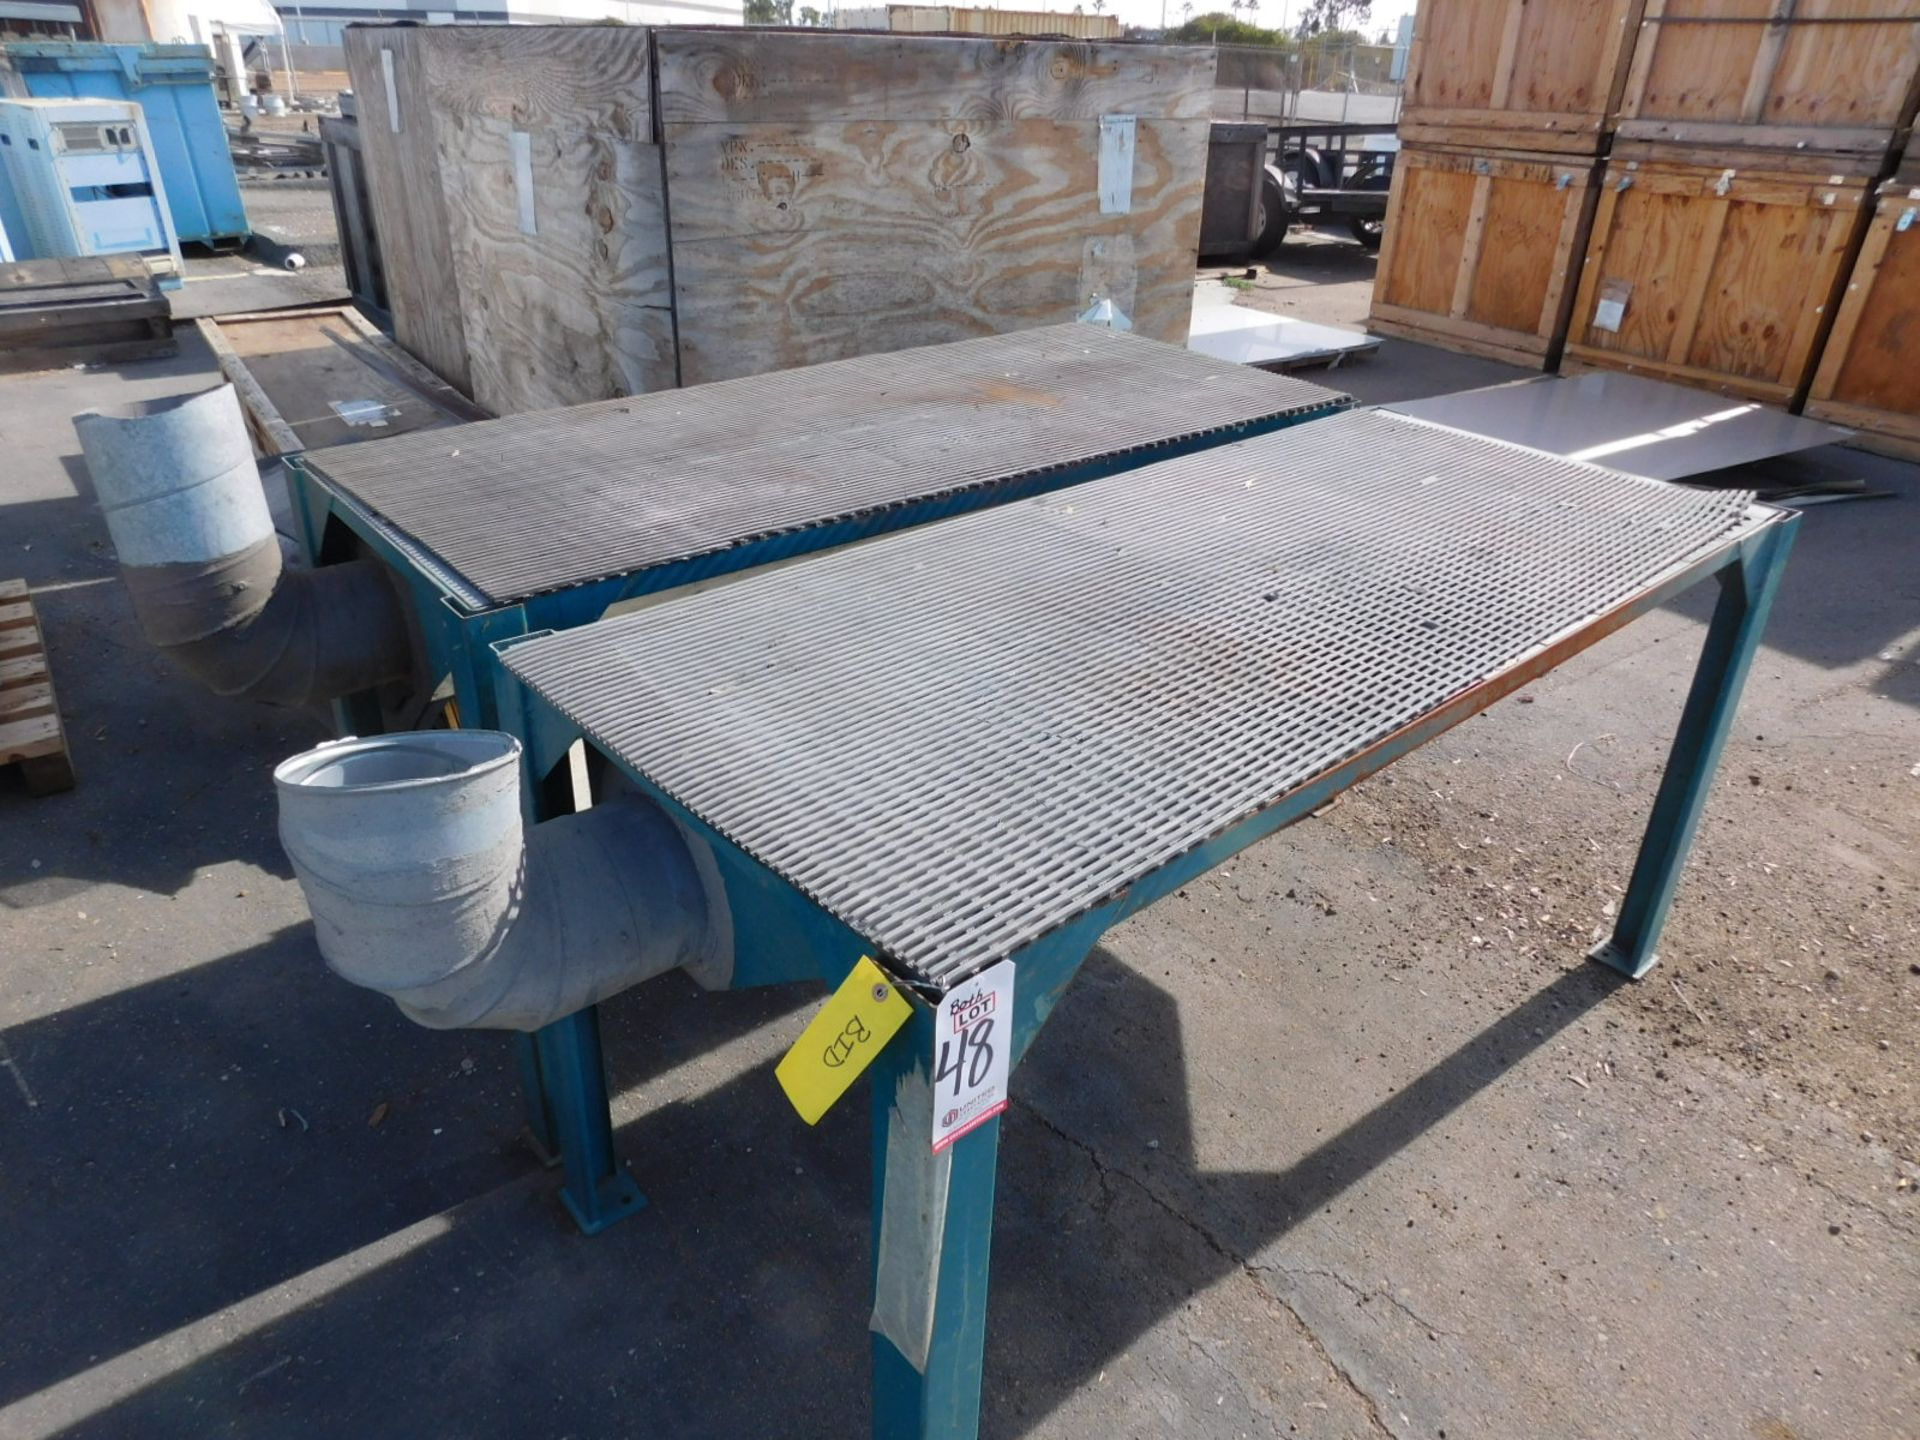 "Lot 48 - LOT - (2) VACUUM SANDING TABLES, EACH TABLE MEASURES 6' X 30"", 36"" WORKING HEIGHT"